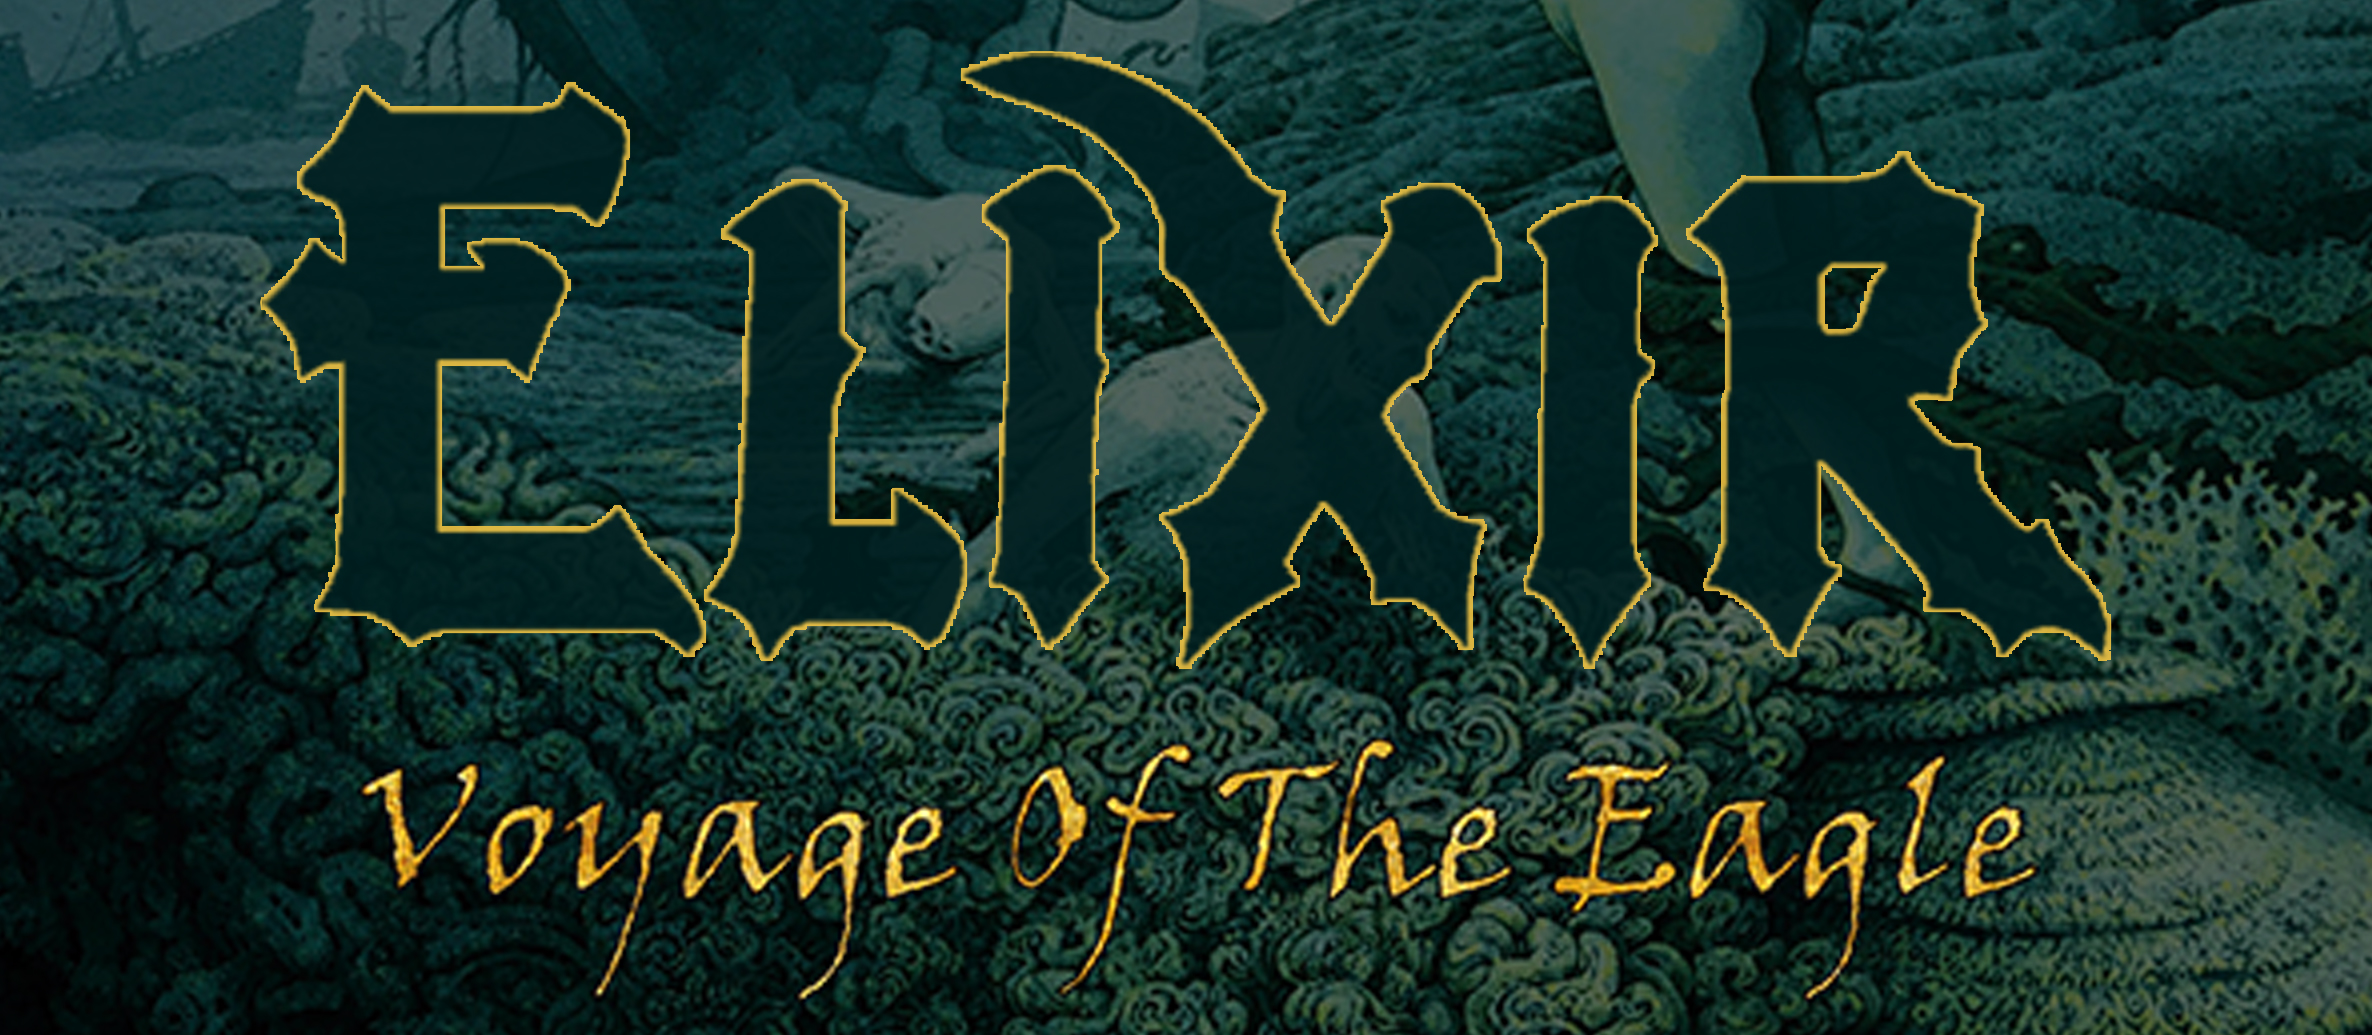 V.O.T.E. ELIXIR! – guitarist Phil Denton on the band's reformation, and their voyage with the eagle…